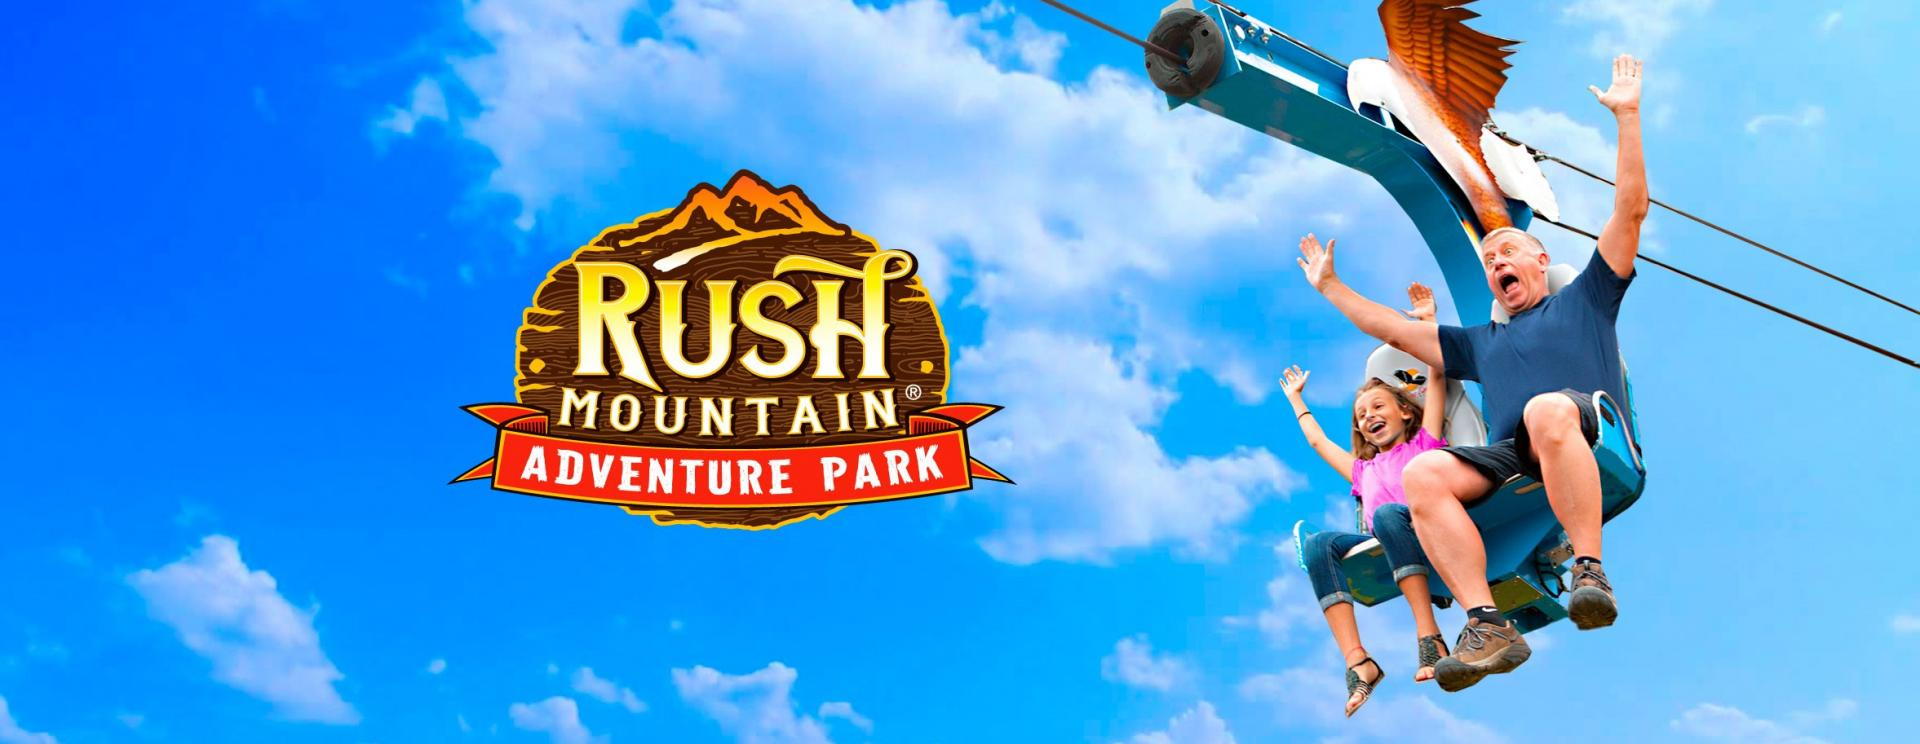 Father's Day Adventures at Rush Mountain Adventure Park